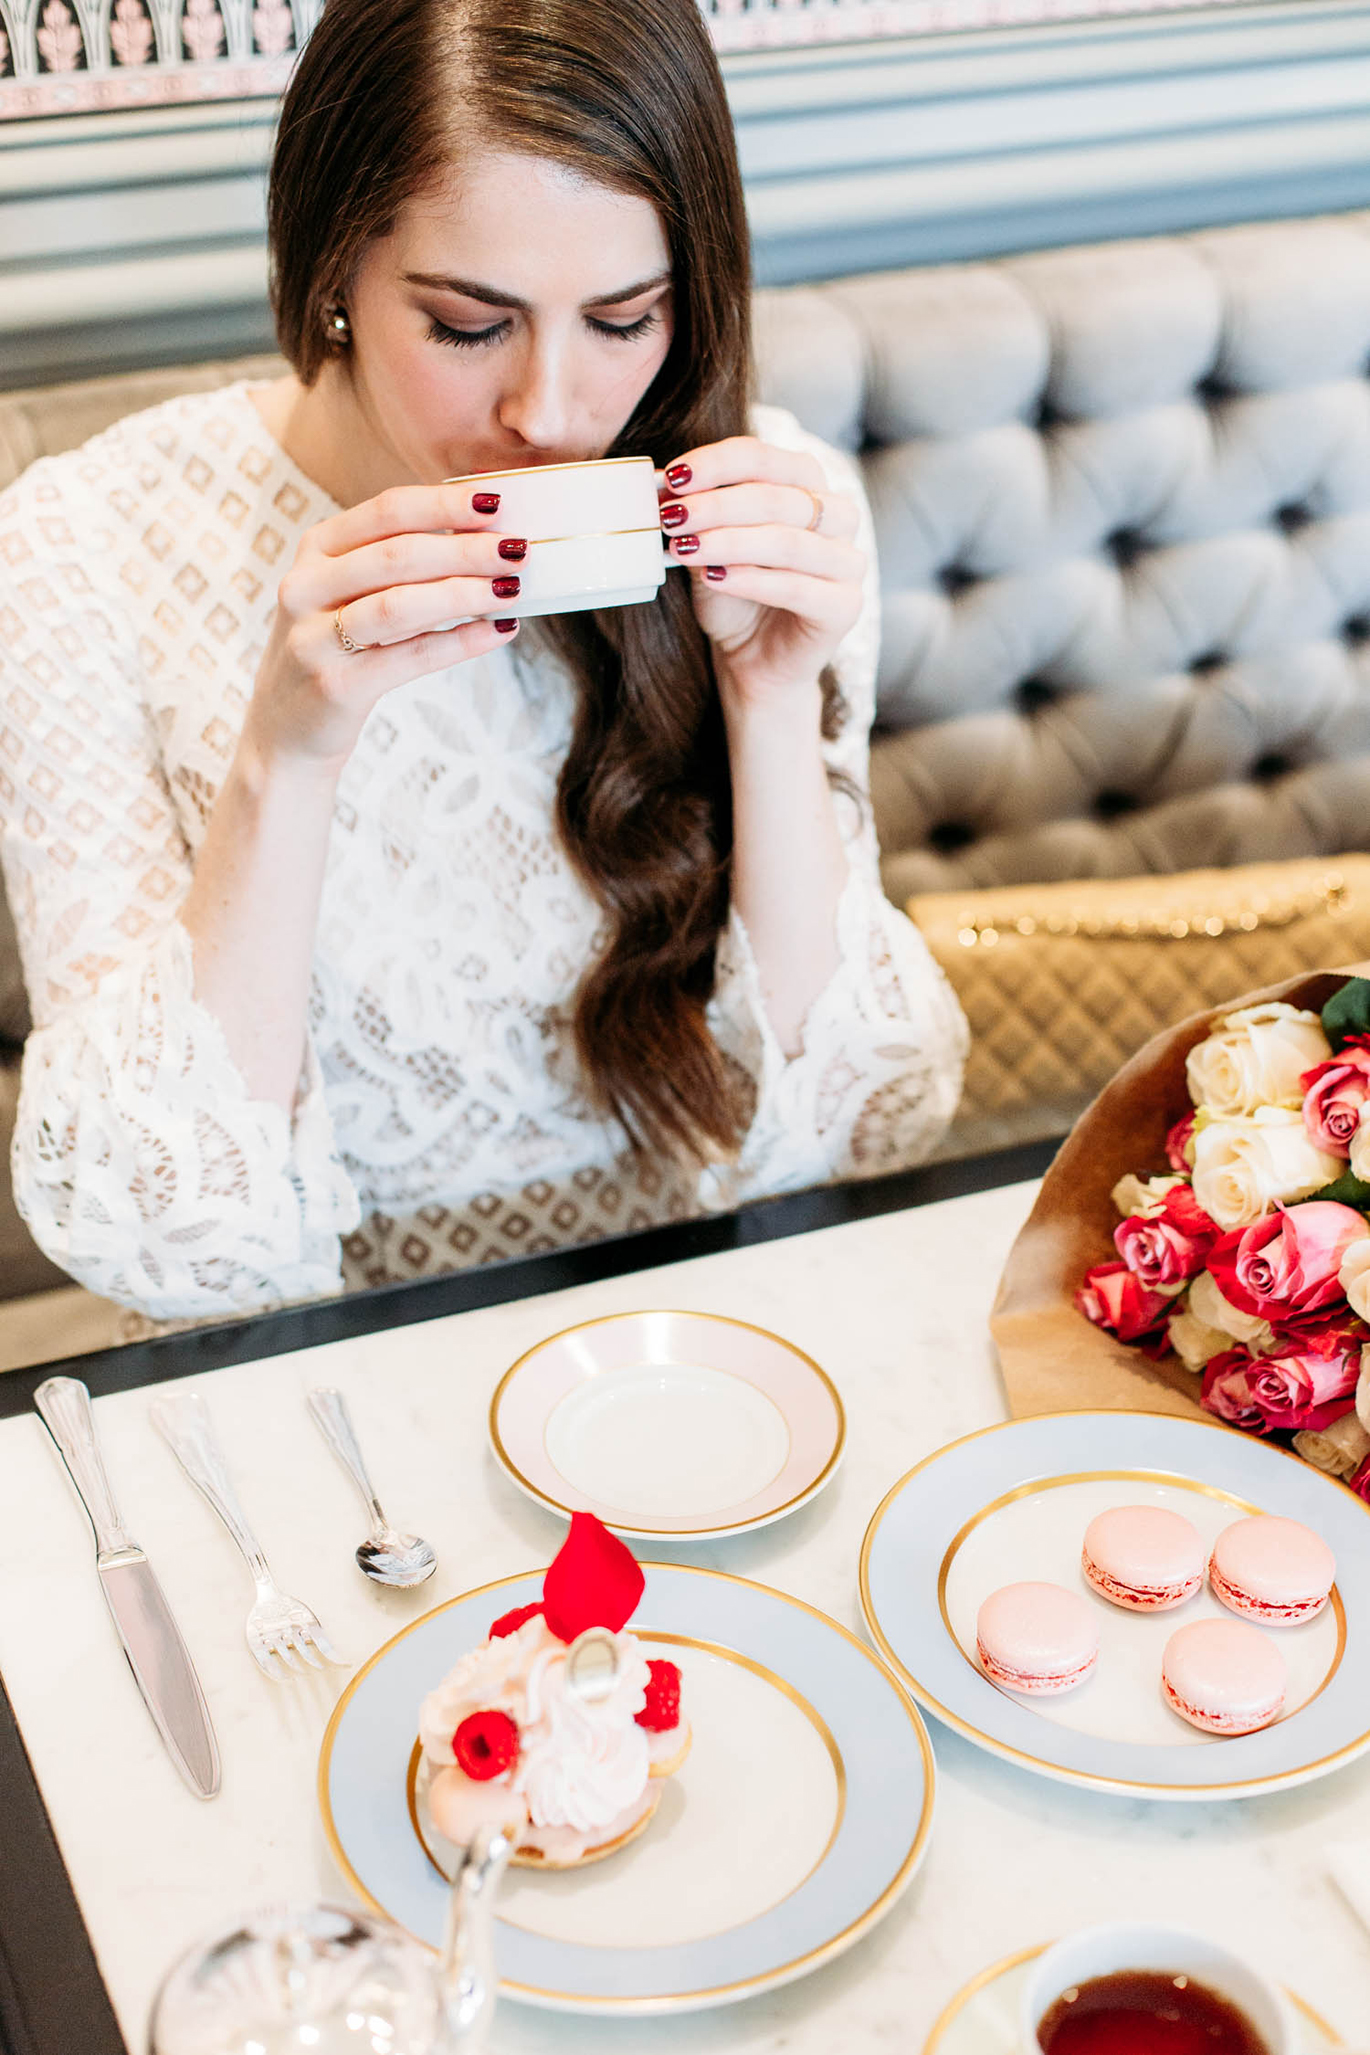 Best afternoon tea in Los Angeles